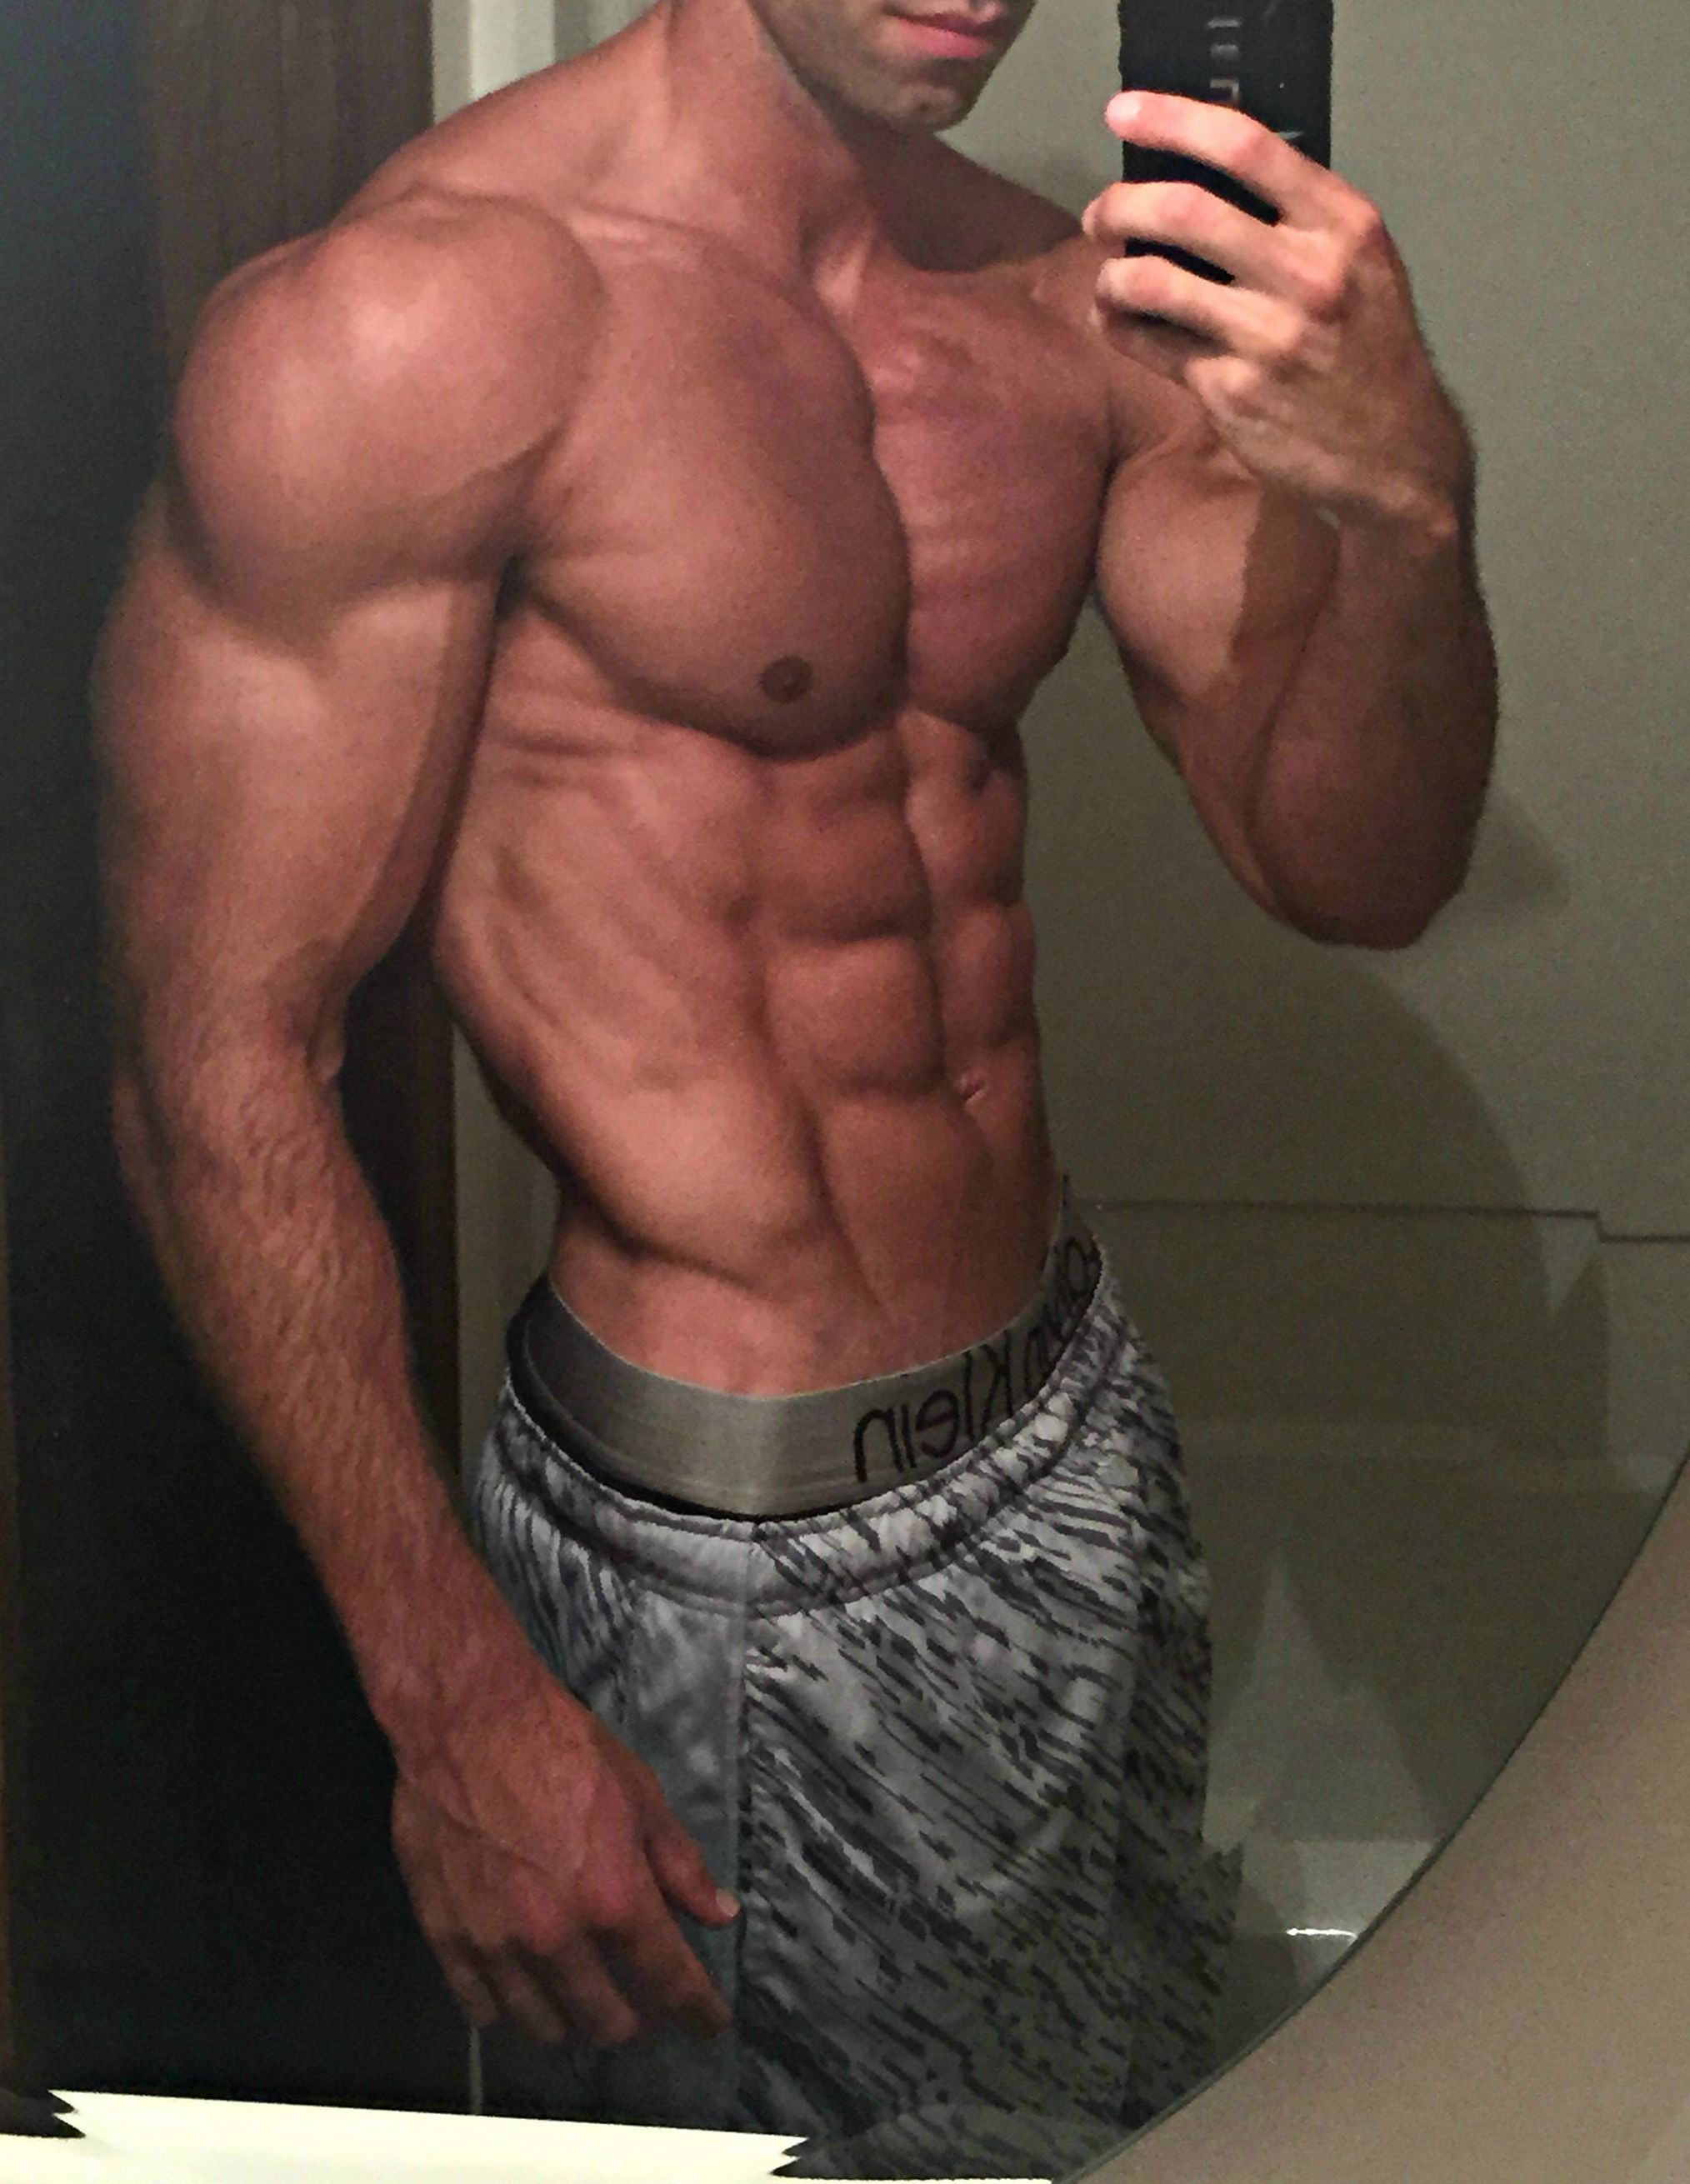 This Guy Has One Of The Best AVI Physiques On The Misc